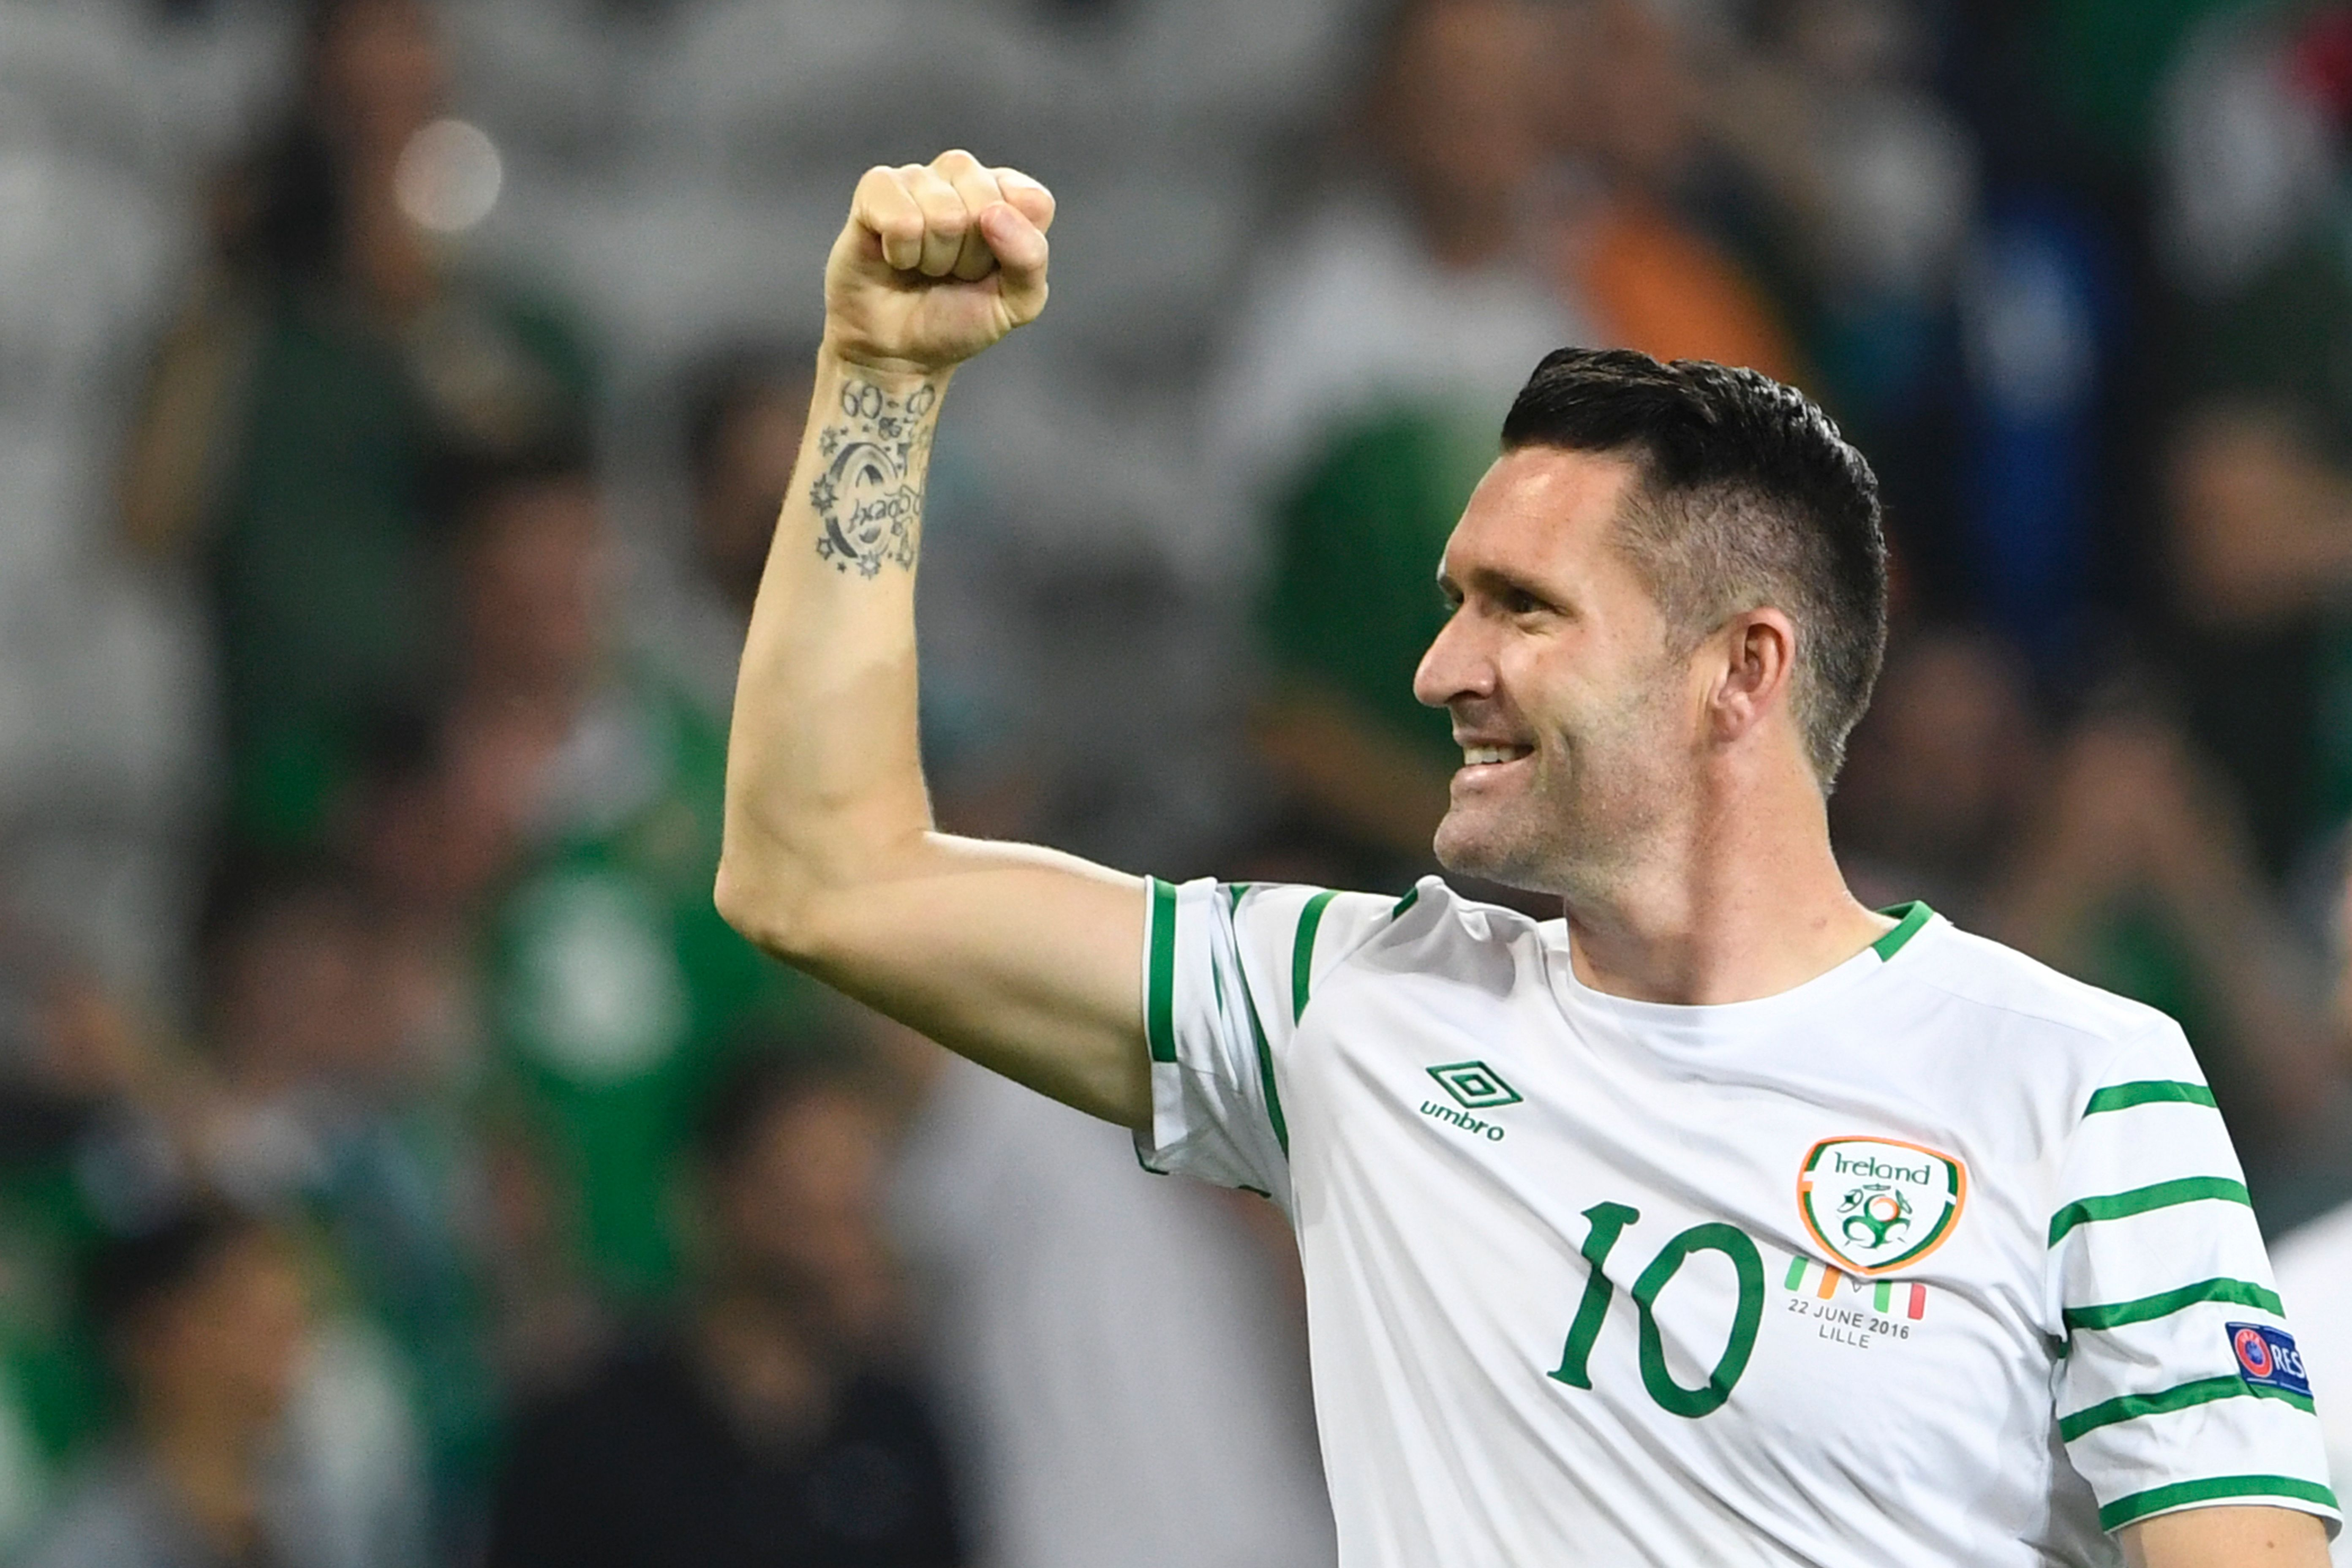 Robbie Keane on France grudge match: It was seven years ago! F****** hell, move on!